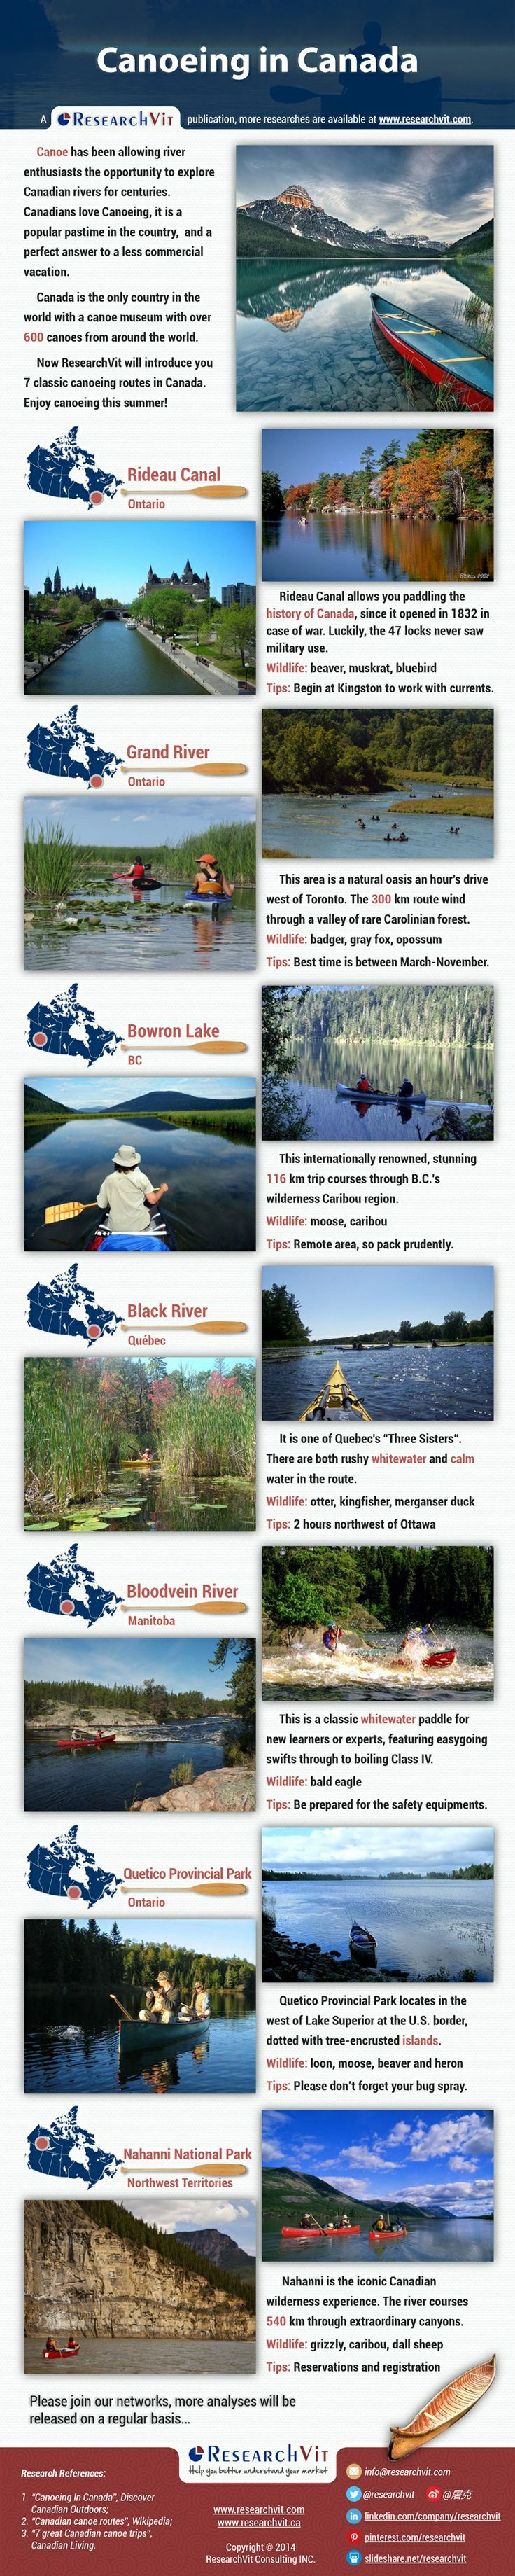 Canoeing in Canada: Canoe has been allowing river enthusiasts the opportunity to explore Canadian rivers for centuries.  Canadians love Canoeing, it is a popular pastime in the country, and a perfect answer to a less commercial vacation. Now ResearchVit will introduce you 7 classic canoeing routes in Canada. Enjoy canoeing this summer!